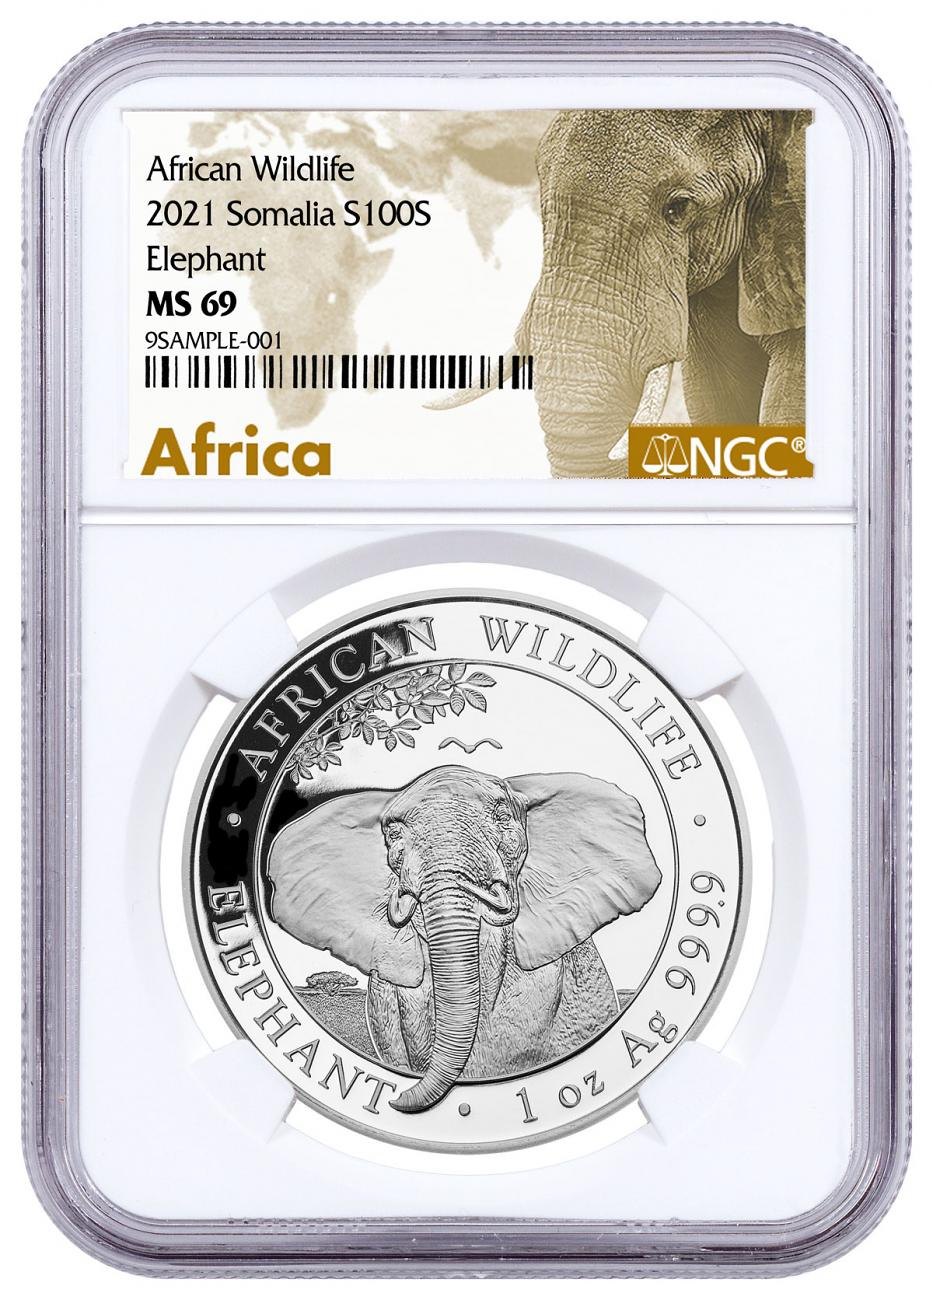 2021 Somalia 1 oz Silver Elephant Sh100 Coin NGC MS69 Exclusive African Elephant Label